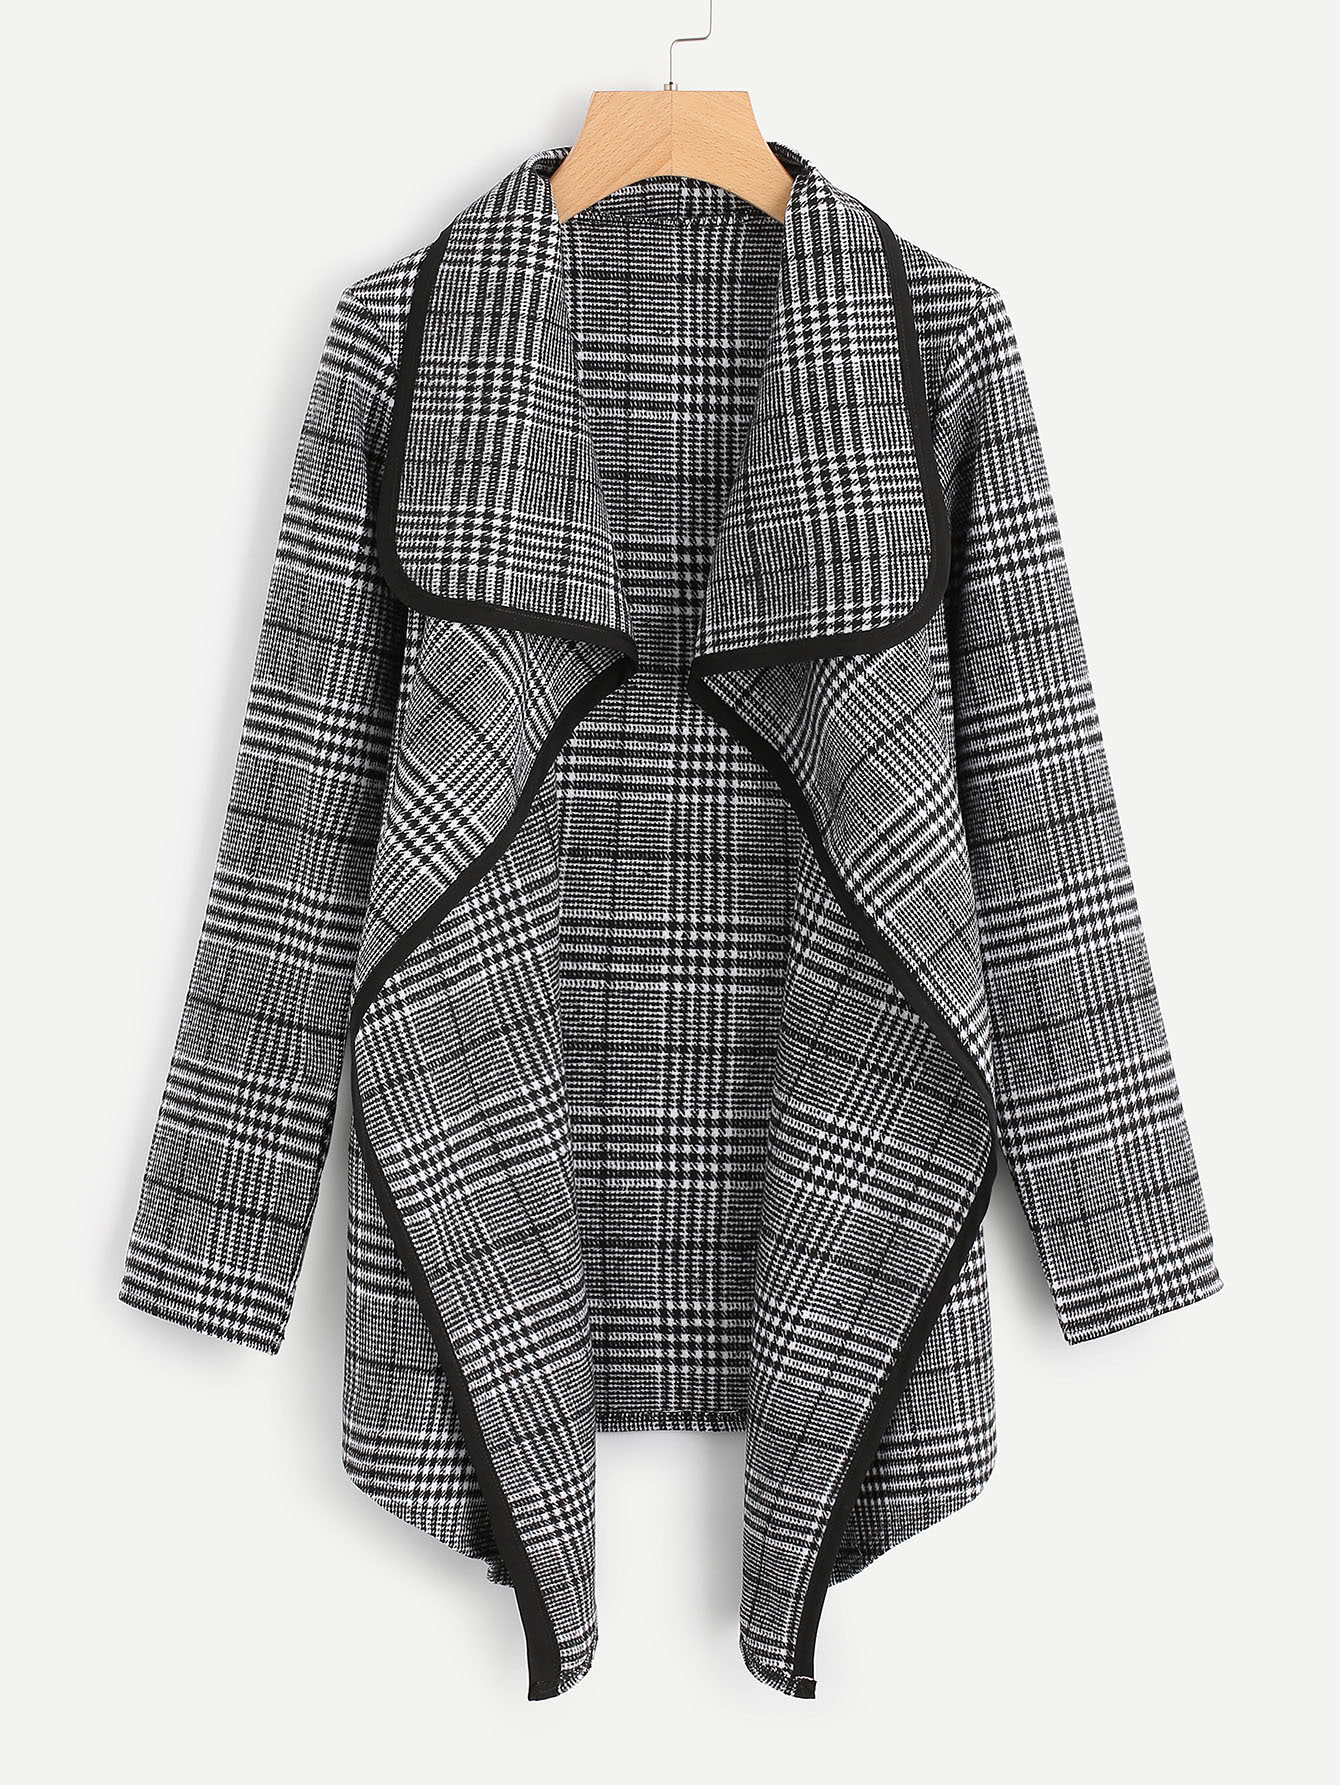 Tartan Plaid Waterfall Neck Jacket цена и фото